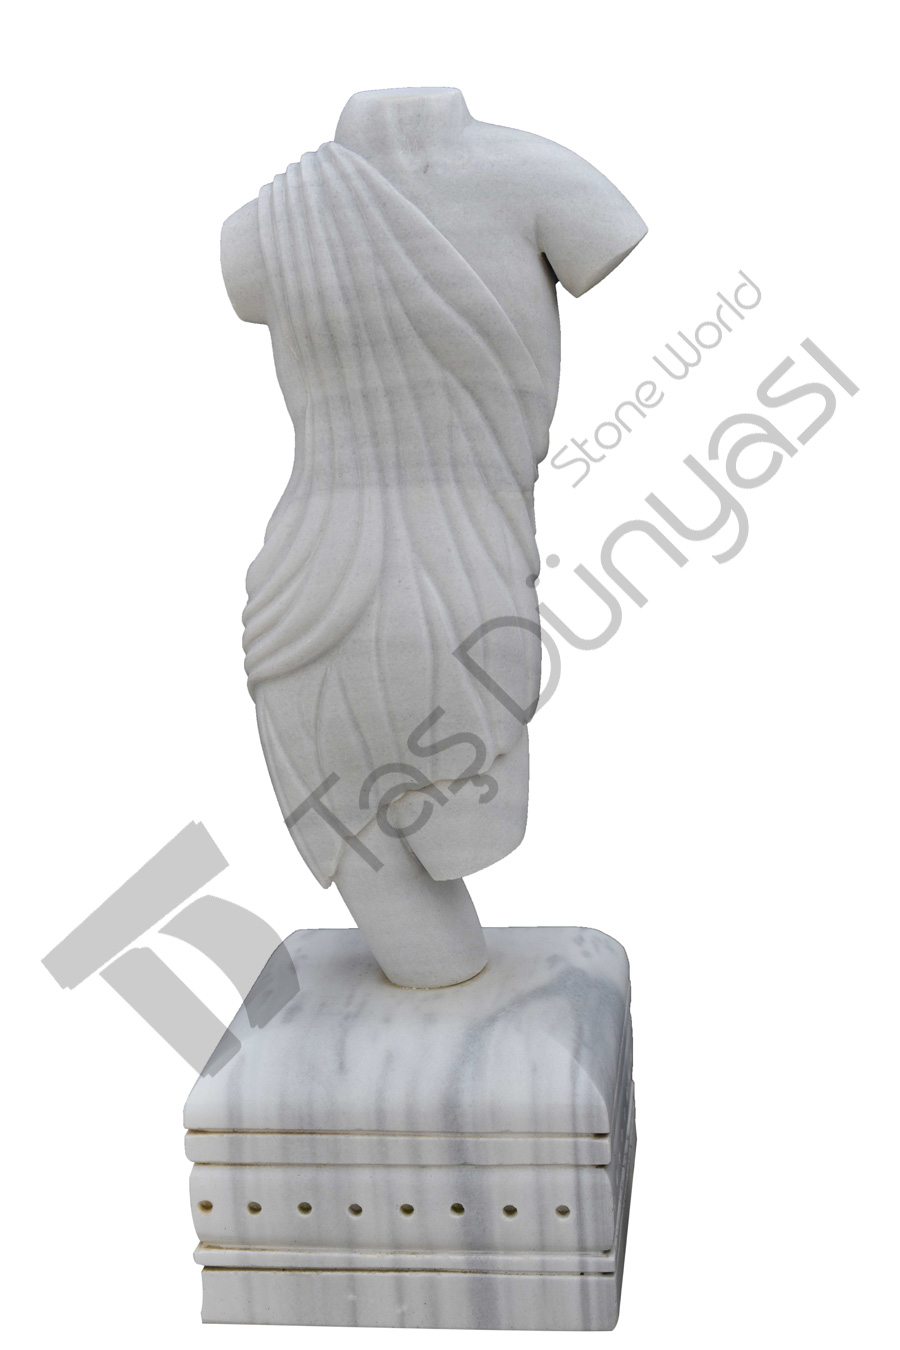 Antique Woman Sculpture